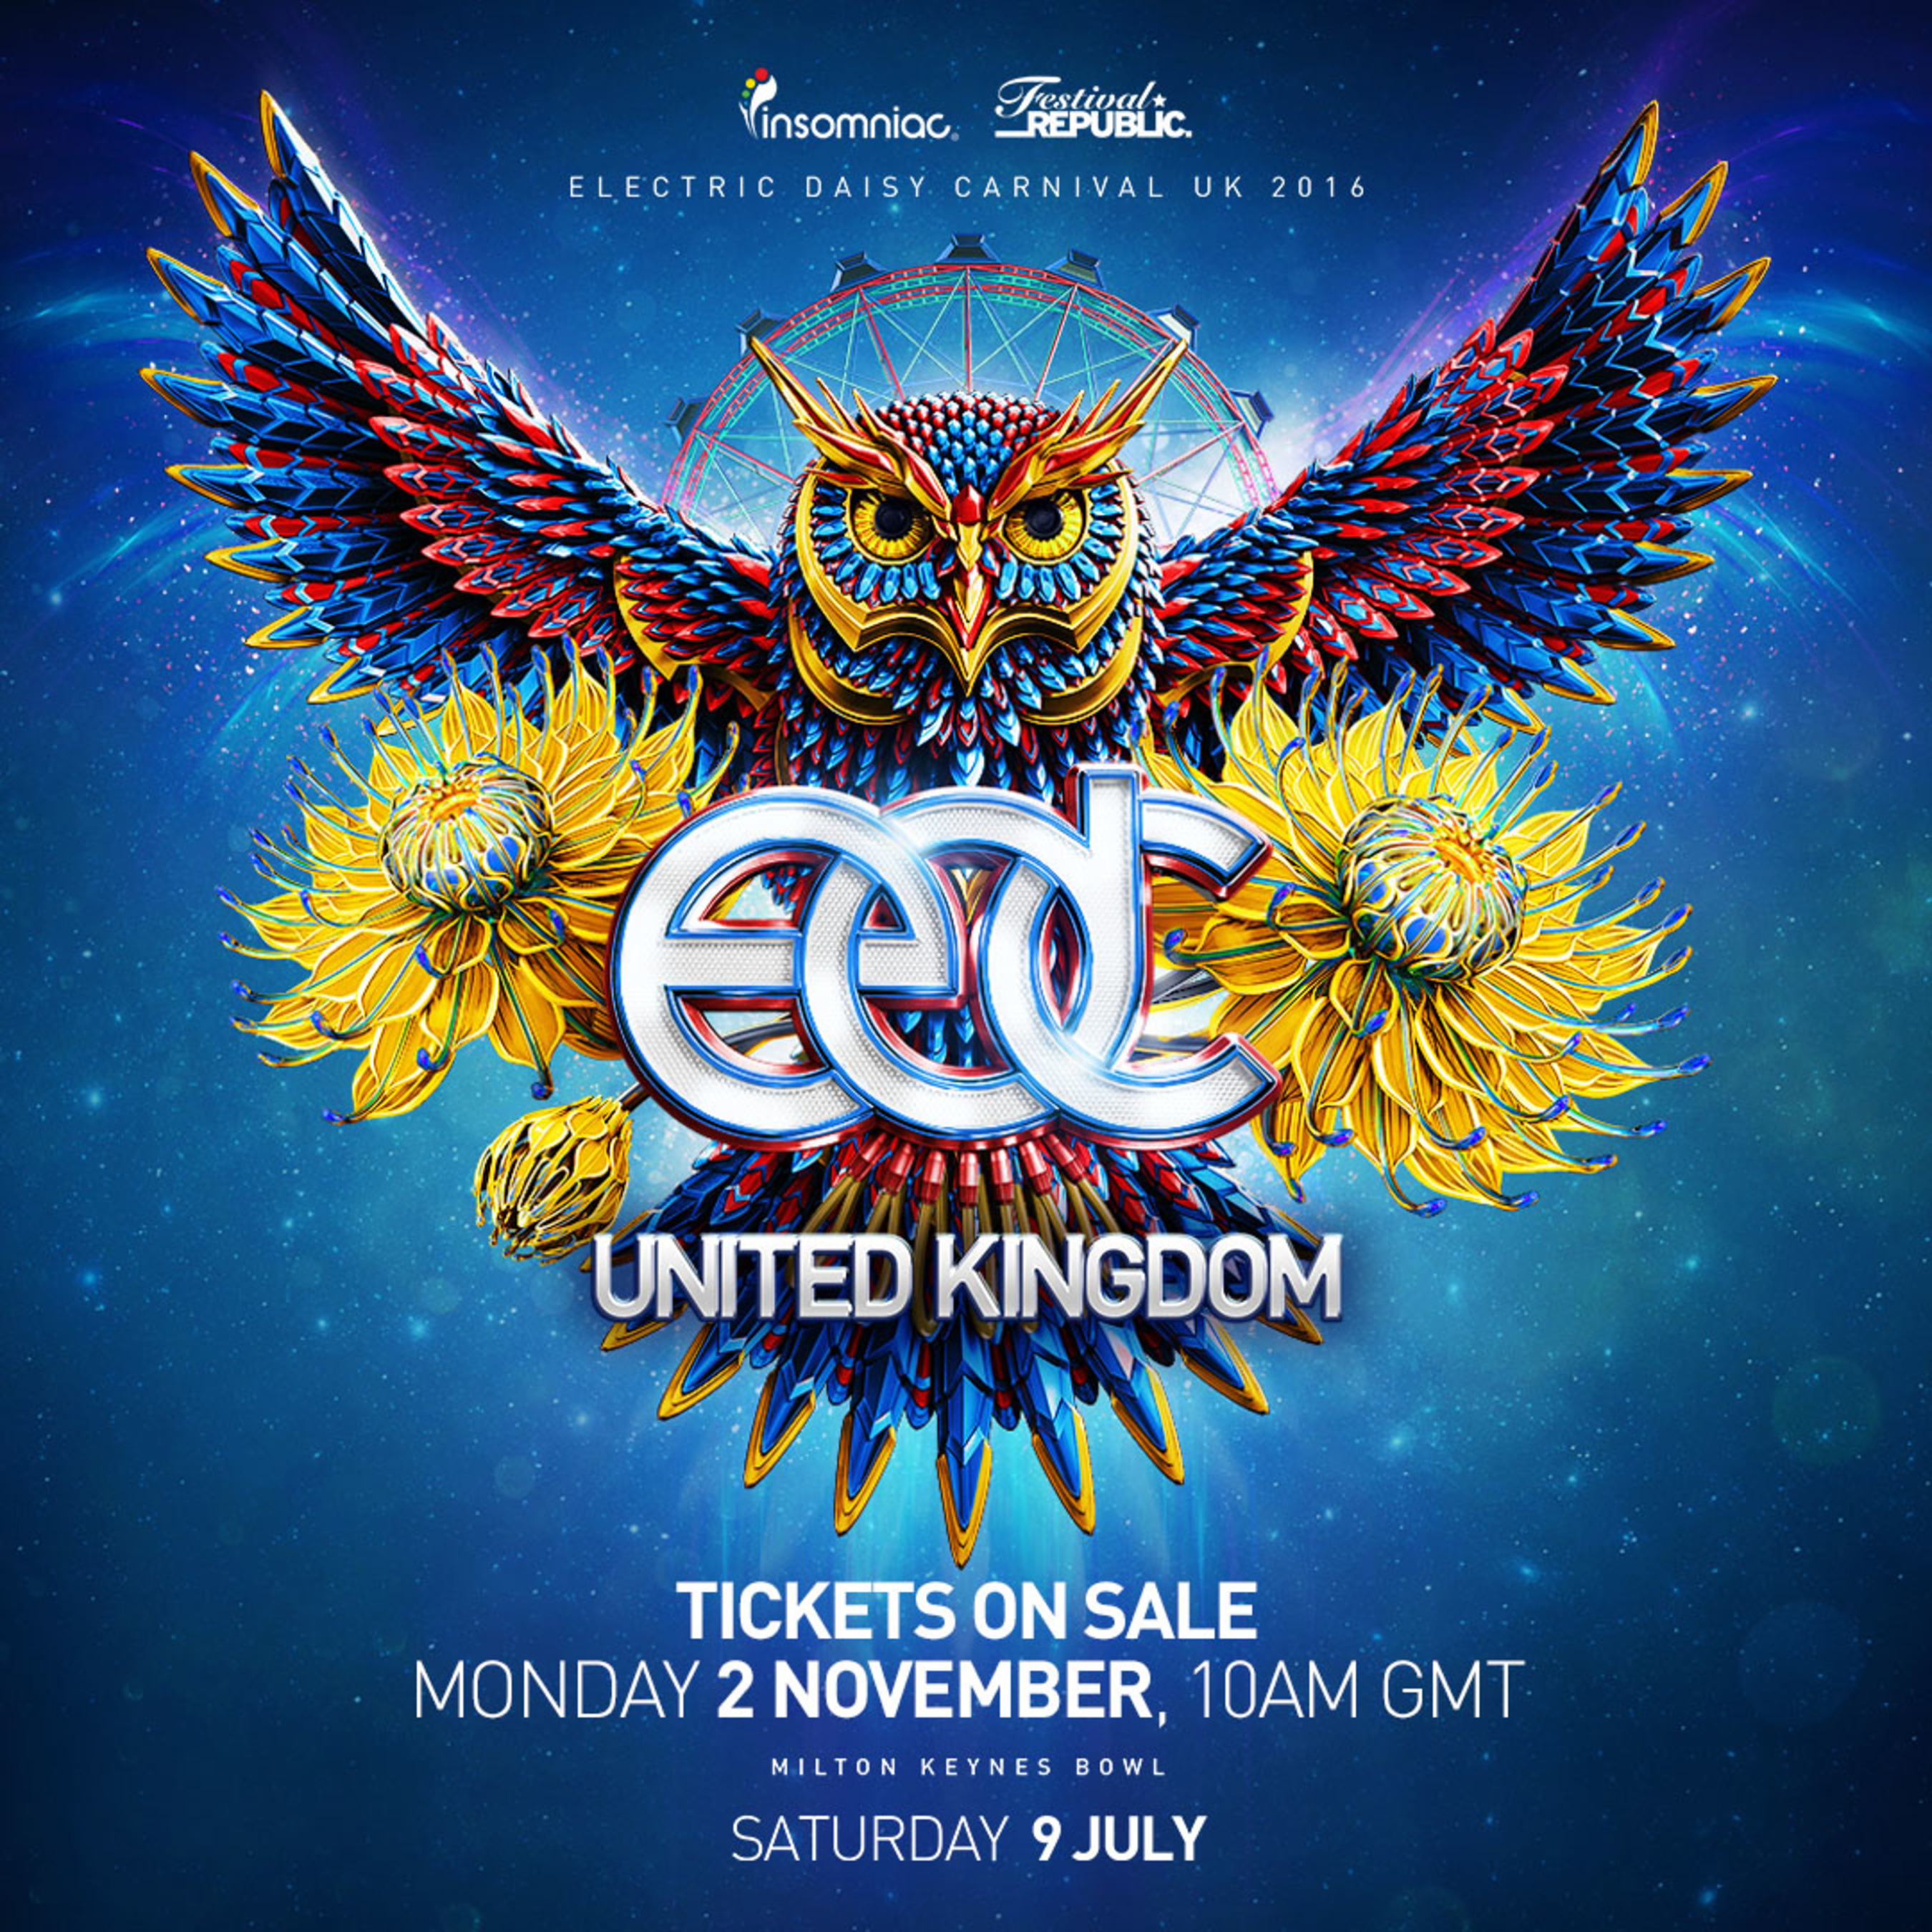 Insomniac Announces On Sale Date For 4th Annual Electric Daisy Carnival, UK